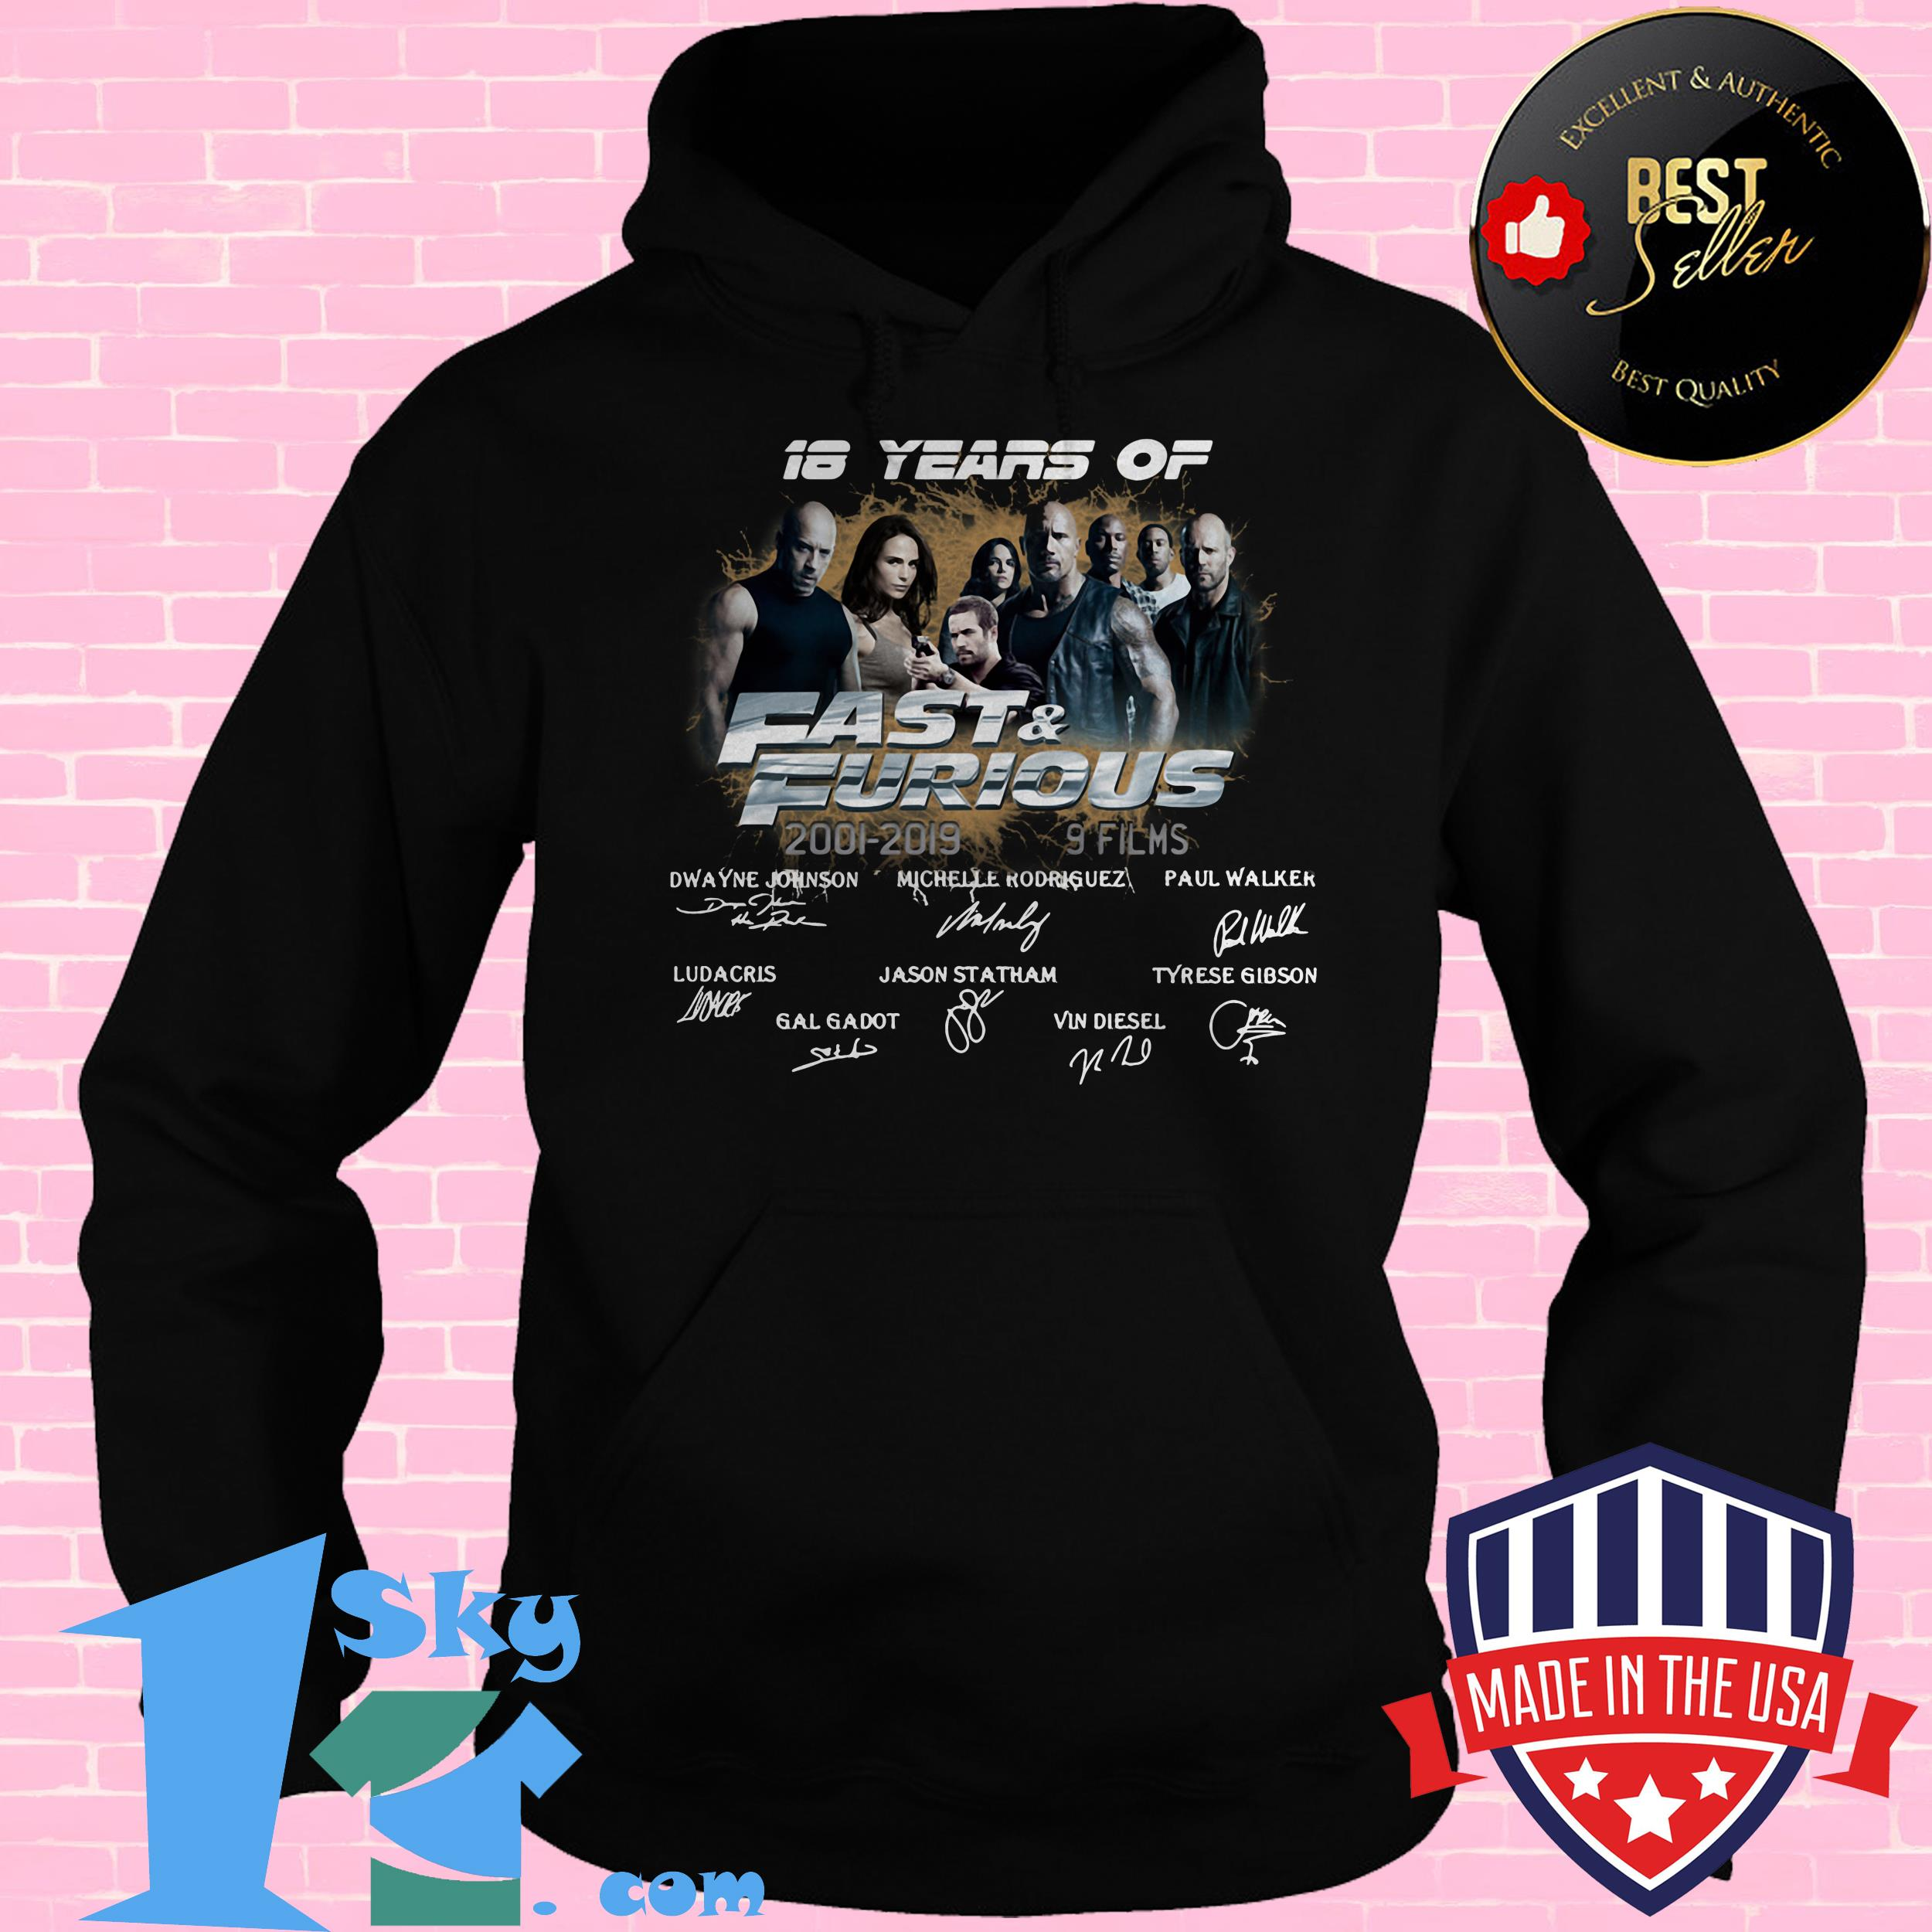 18 years of fast furious 2001 2019 8 films signature hoodie - 18 Years Of Fast & Furious 2001-2019 8 Films Signature shirt